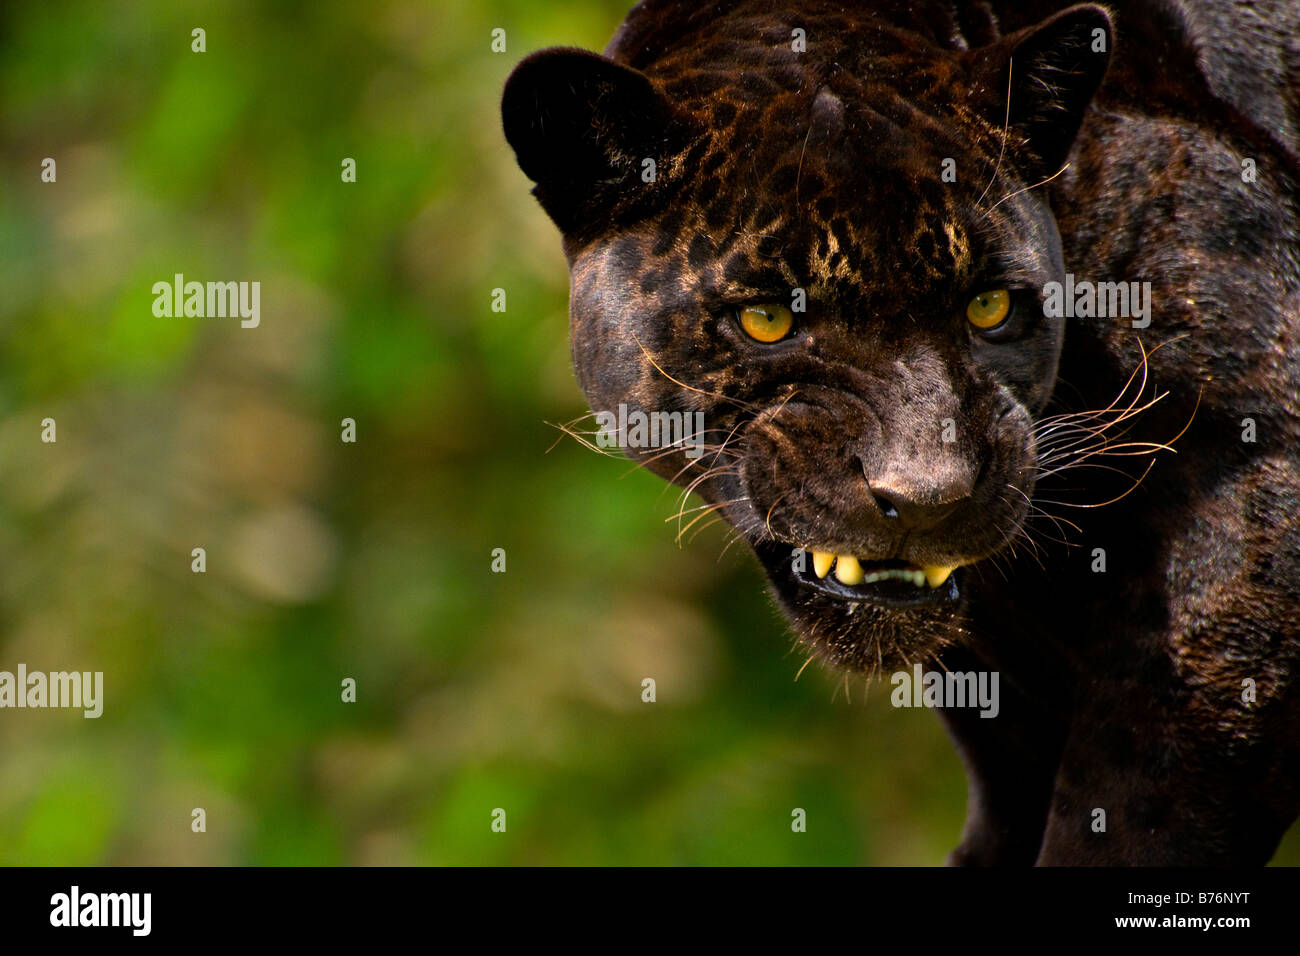 Panther or black jaguar Panthera onca snarling - Stock Image